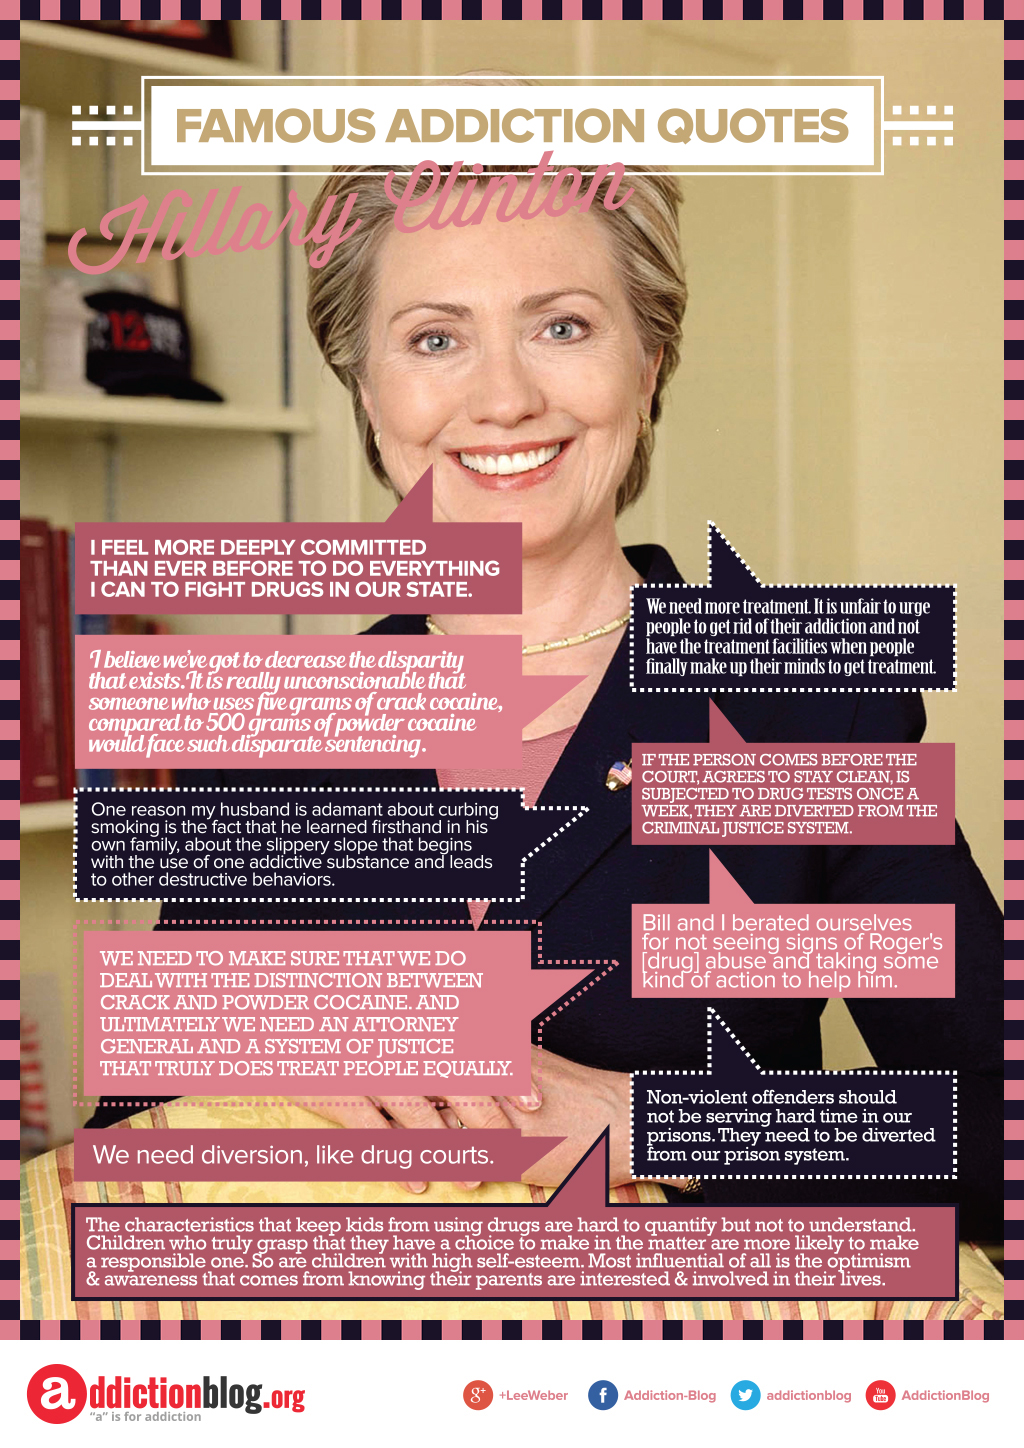 Hillary Clinton quotes on drug policy (INFOGRAPHIC)